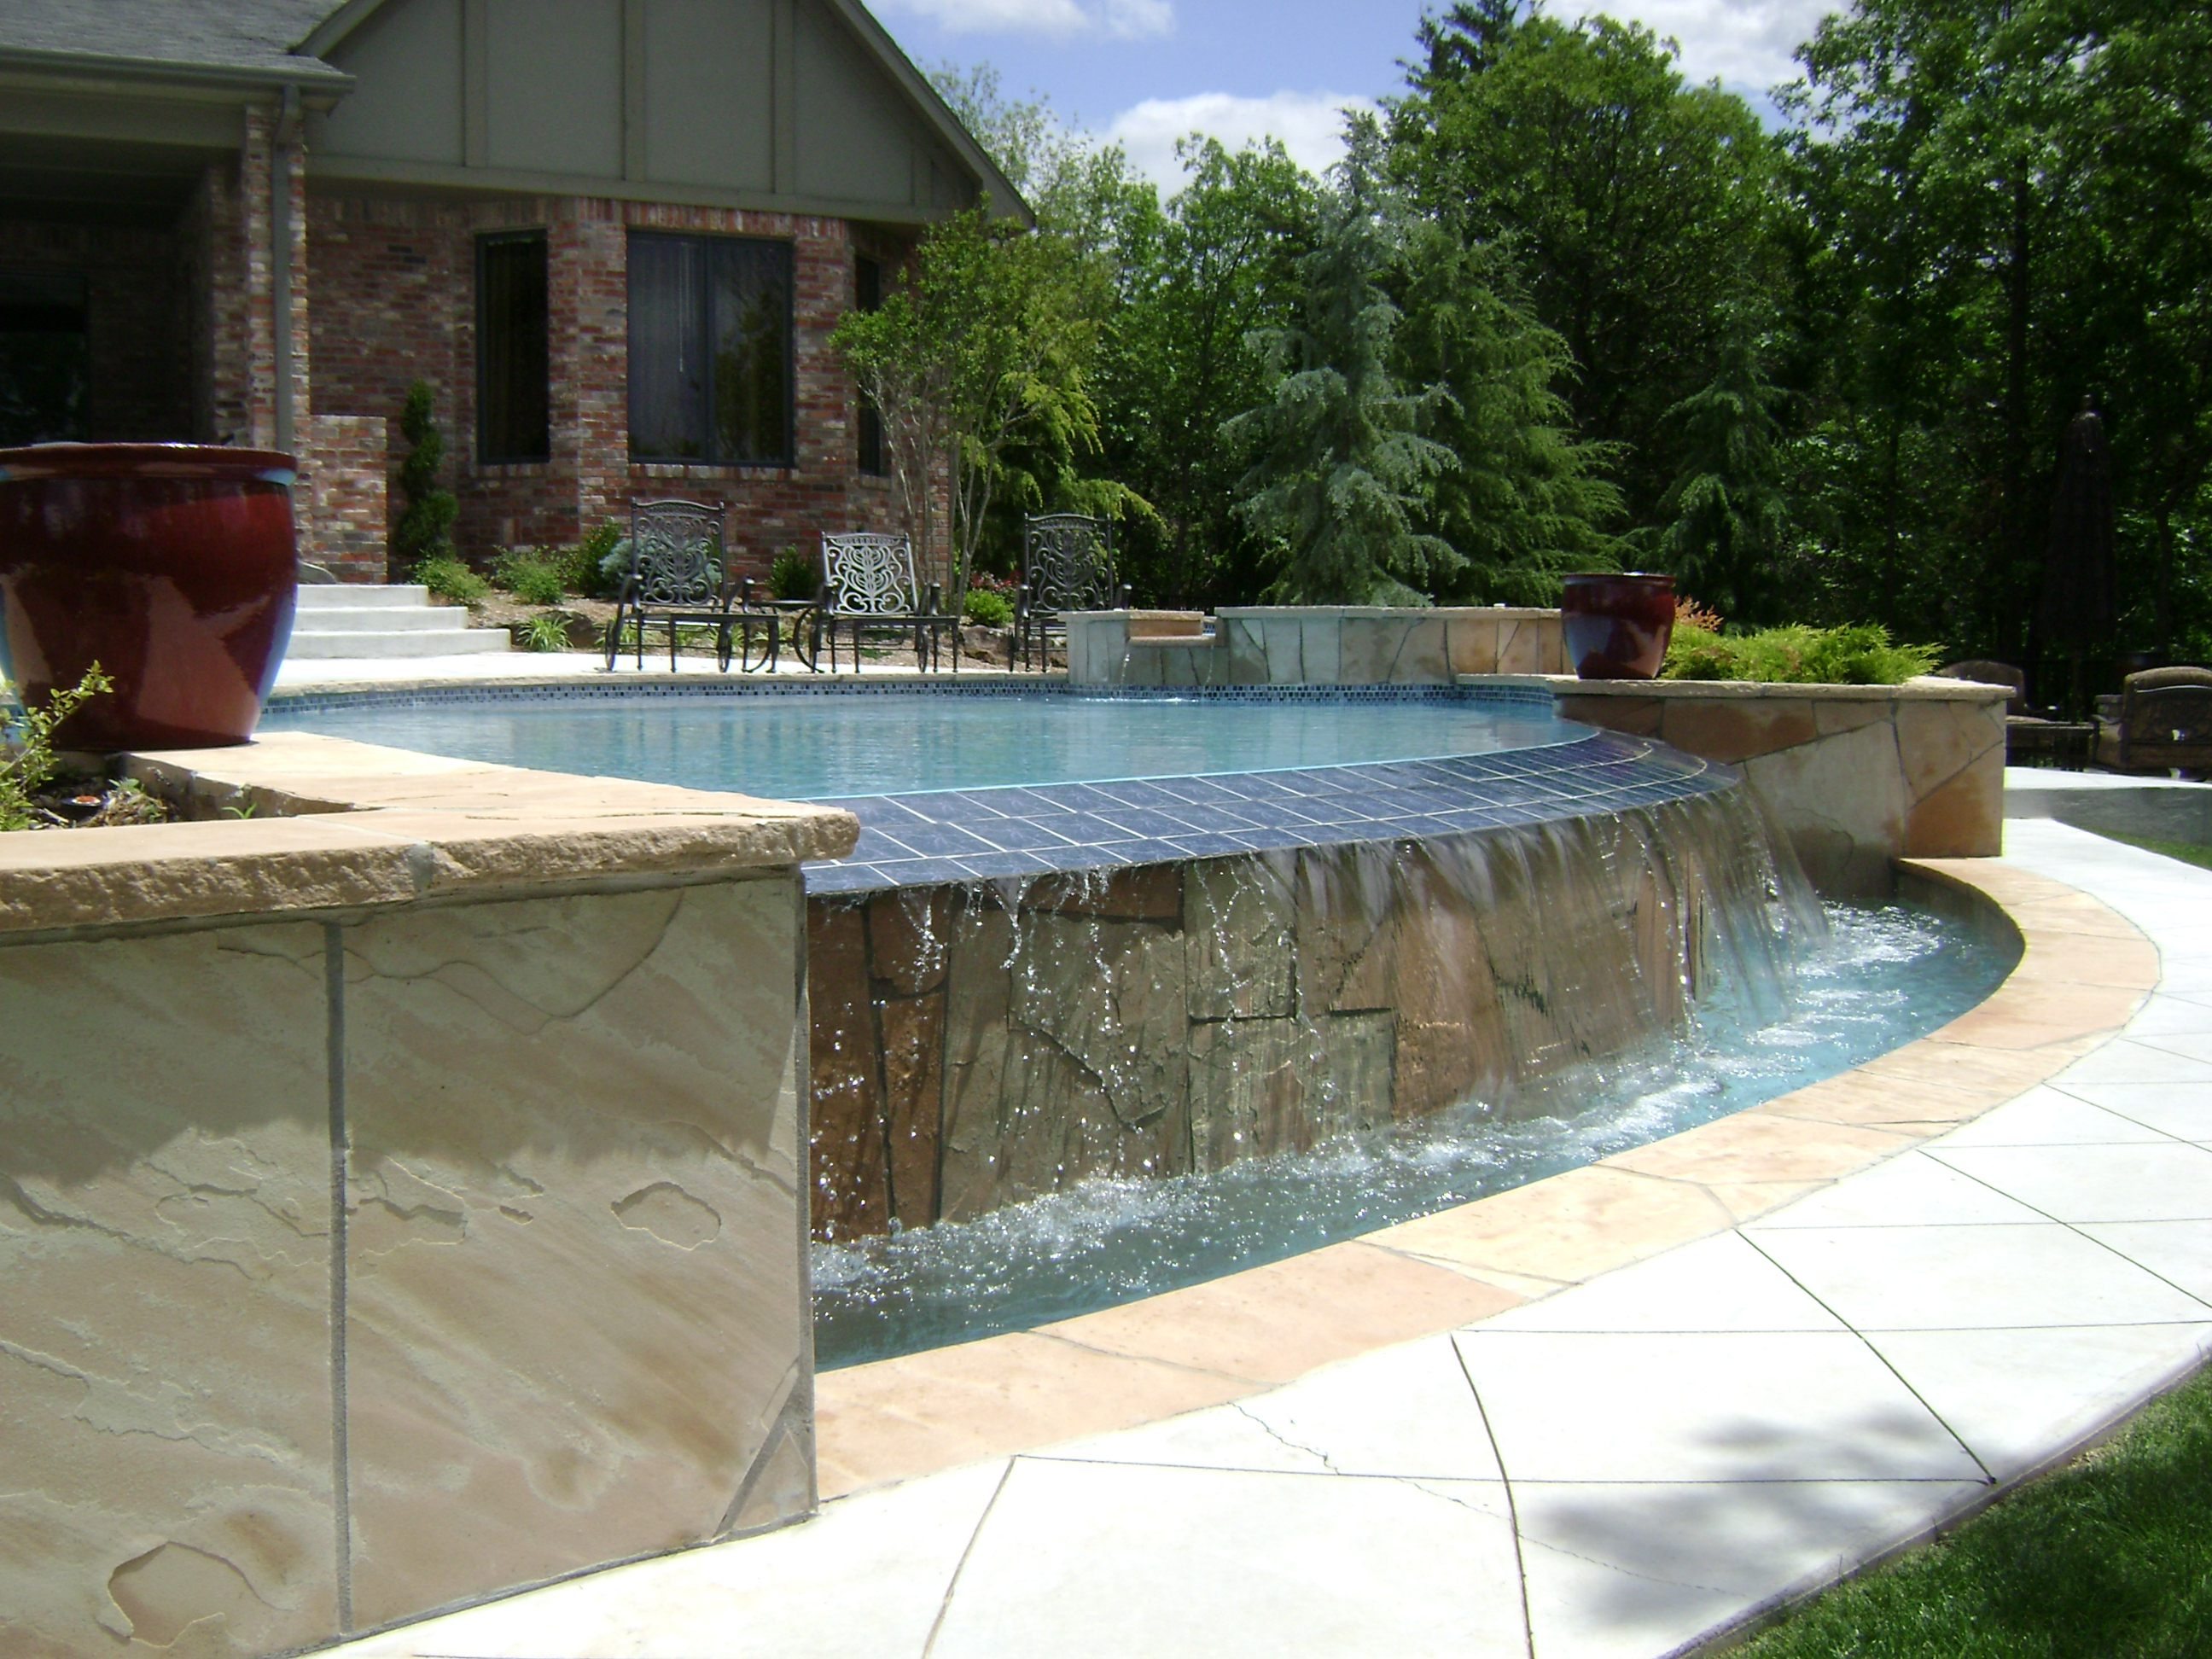 How infinity pools work the optical illusion explained for Pool edges design